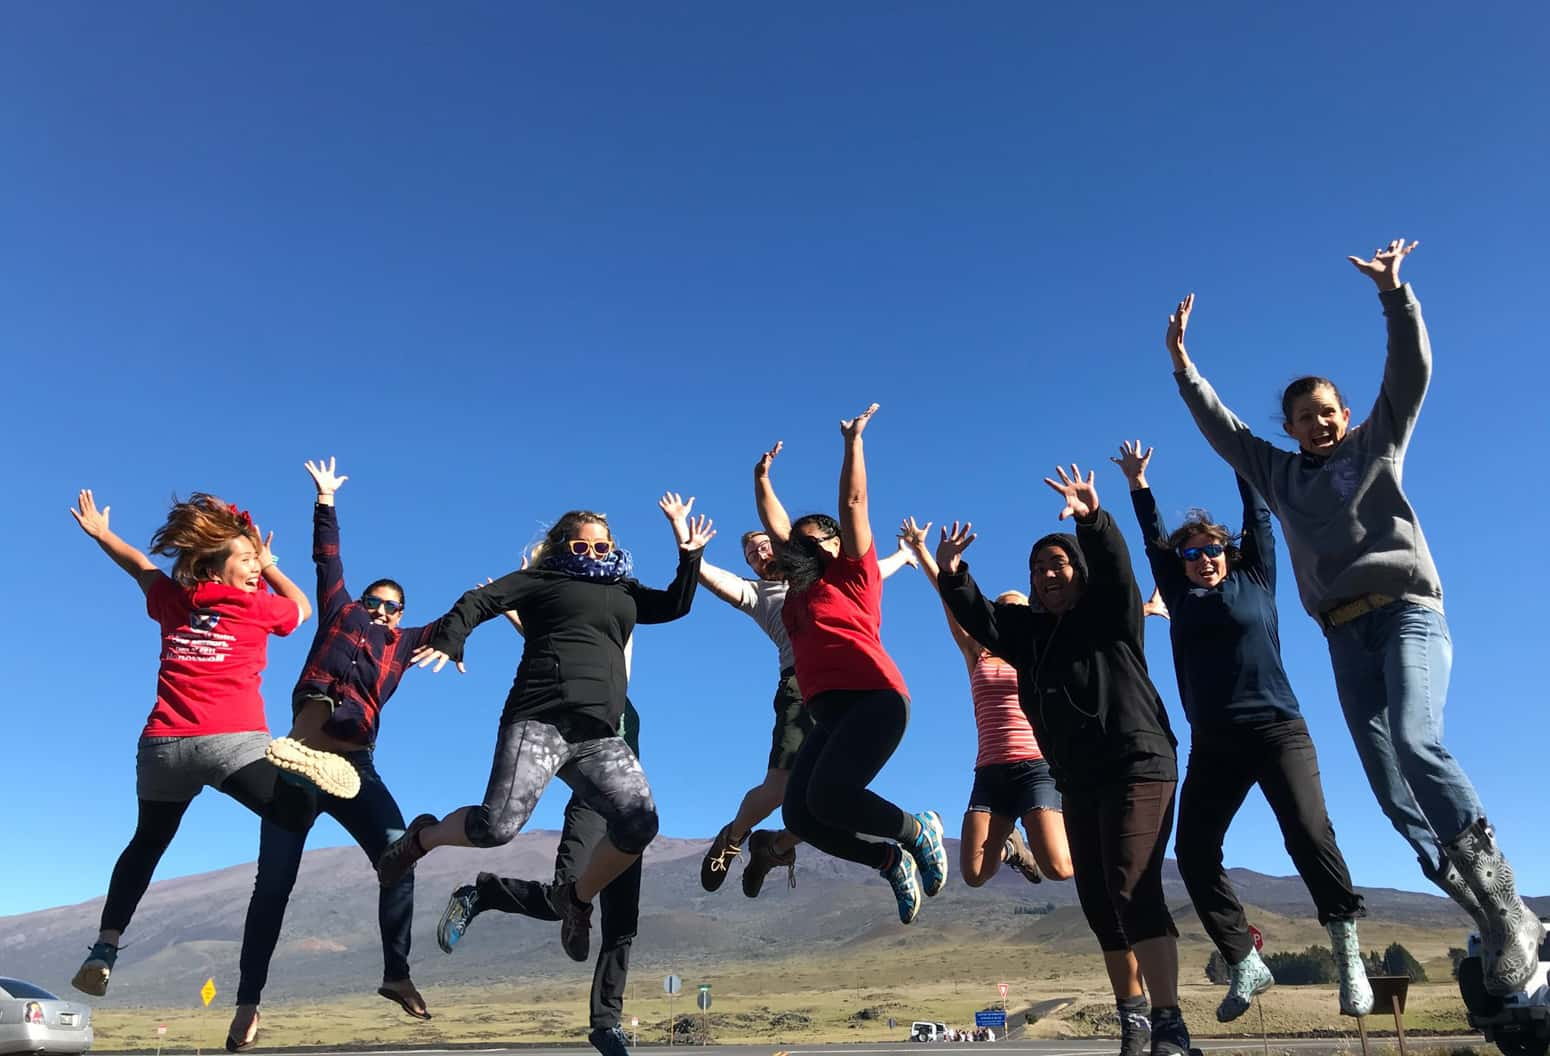 A group of teachers jumping with joy